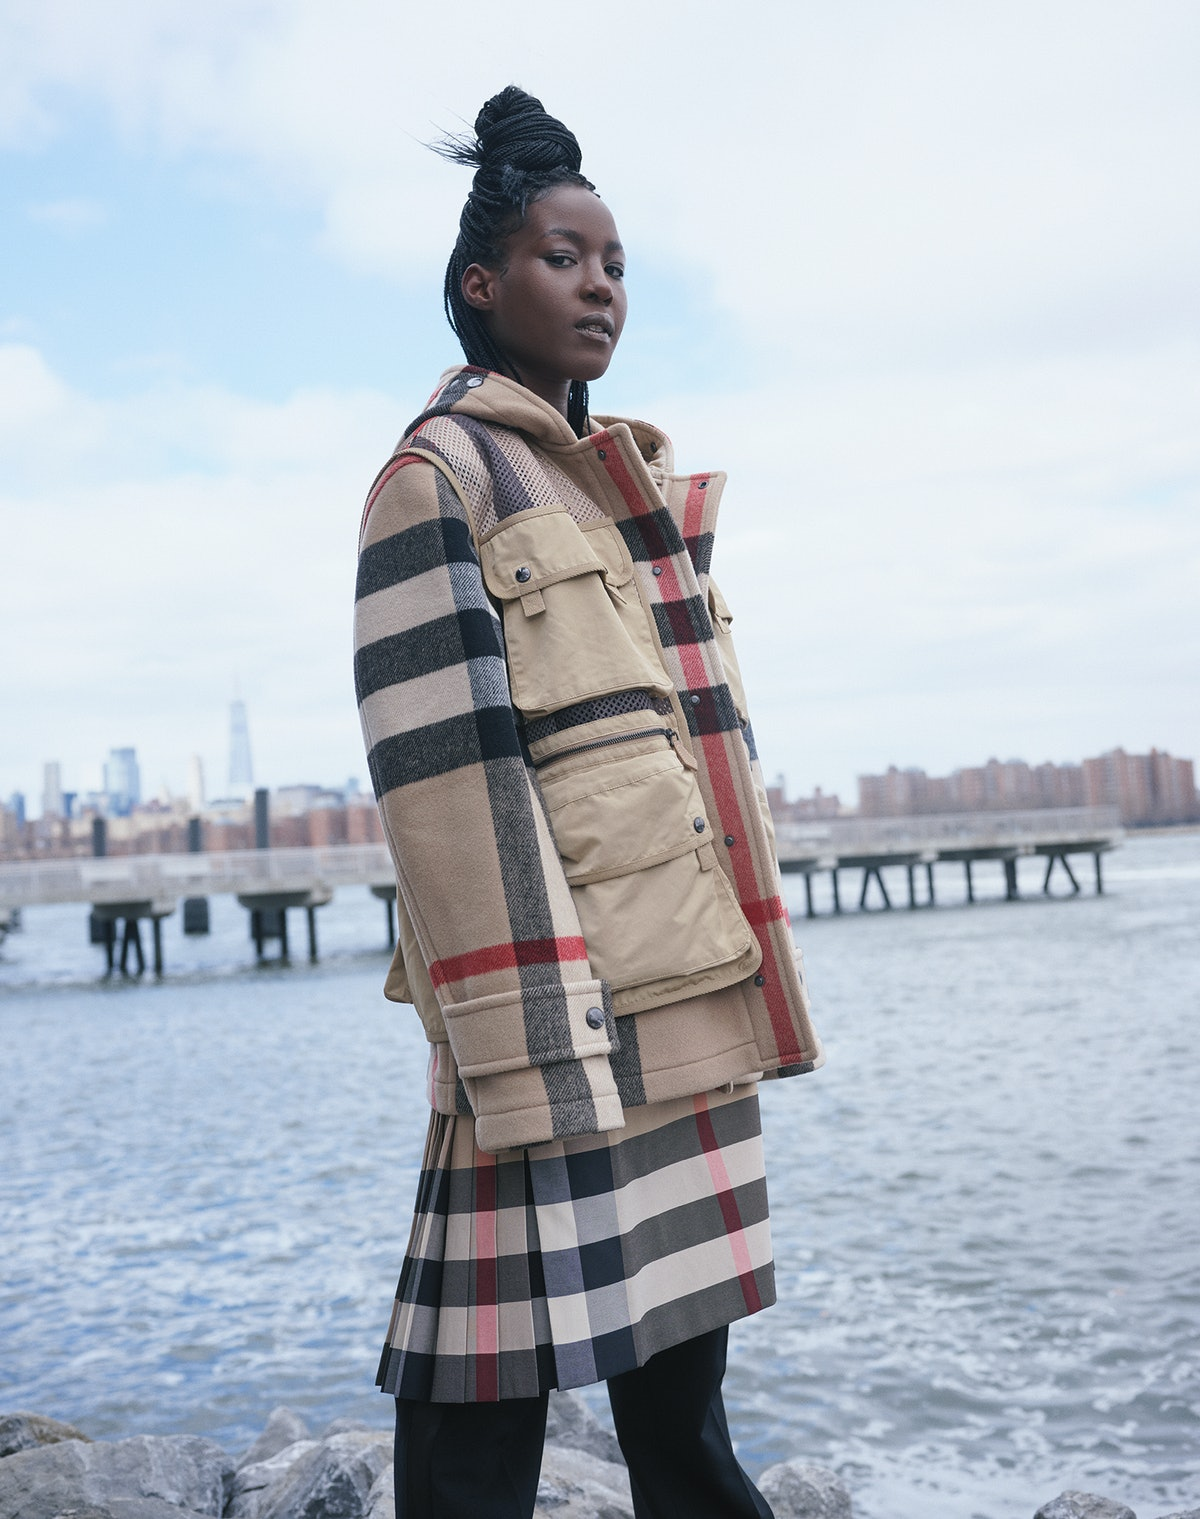 Hawa wears a Burberry coat with detachable vest, skirt, and pants.